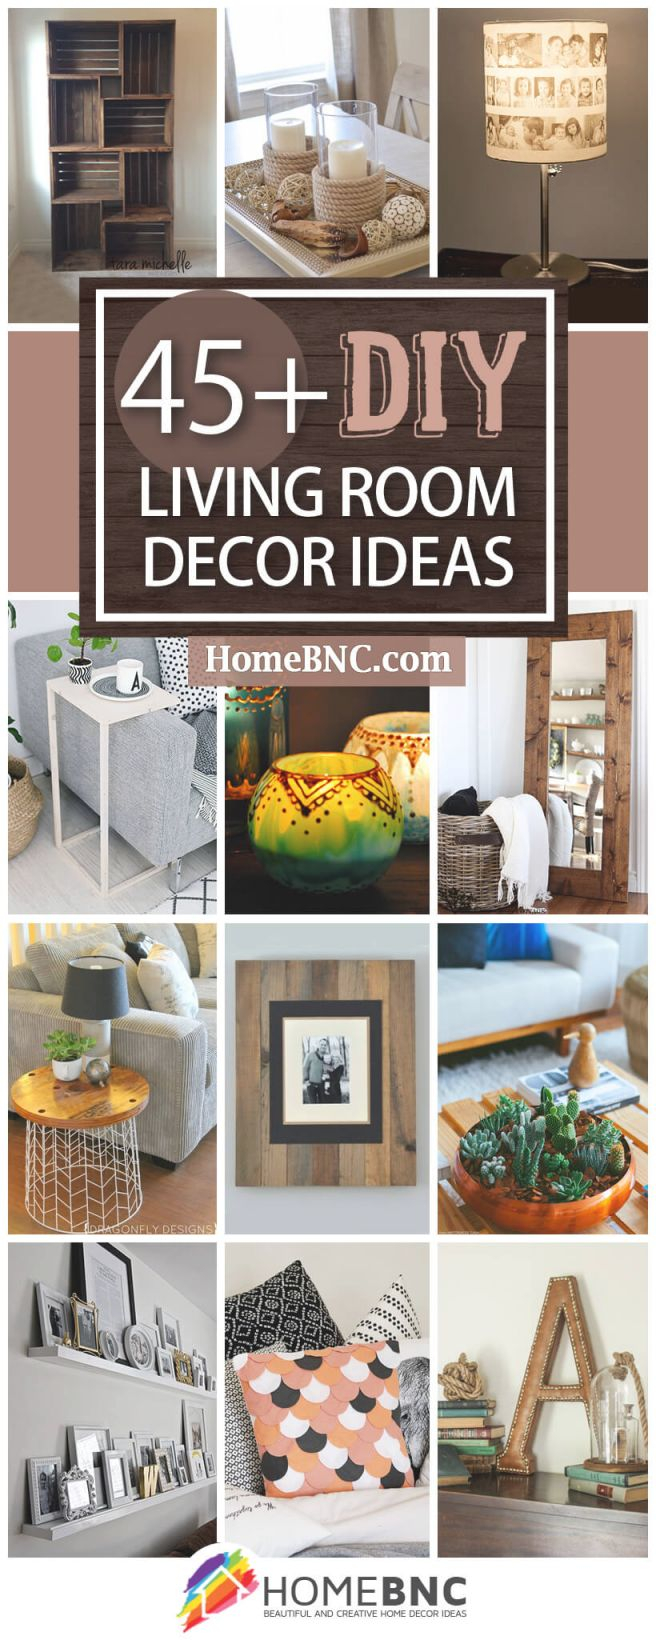 45+ Best Diy Living Room Decorating Ideas And Designs For 2020 in Decorating A Small Living Room On A Budget